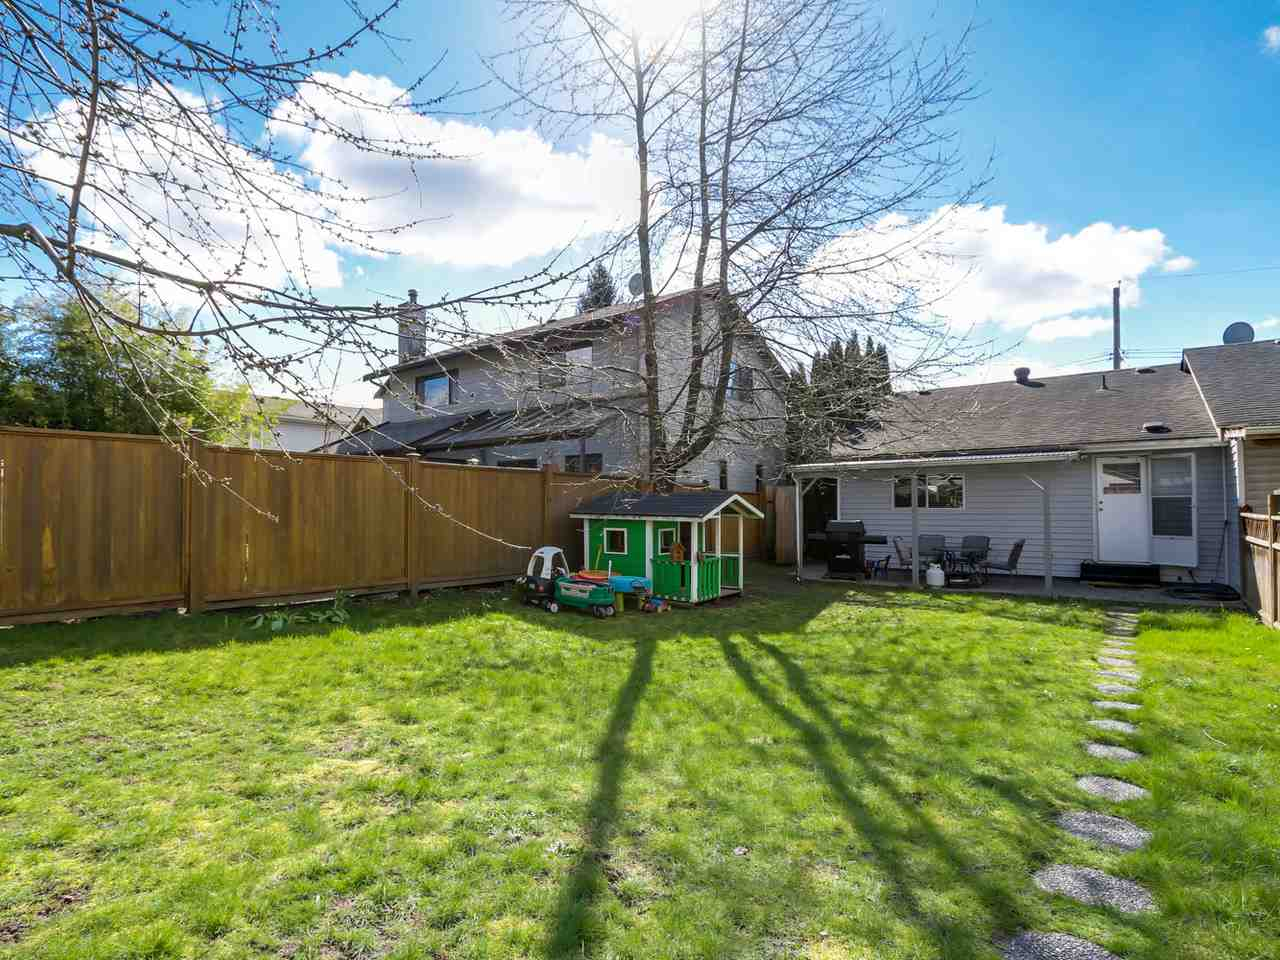 Main Photo: 1935 GRANT Avenue in Port Coquitlam: Glenwood PQ House 1/2 Duplex for sale : MLS®# R2051155